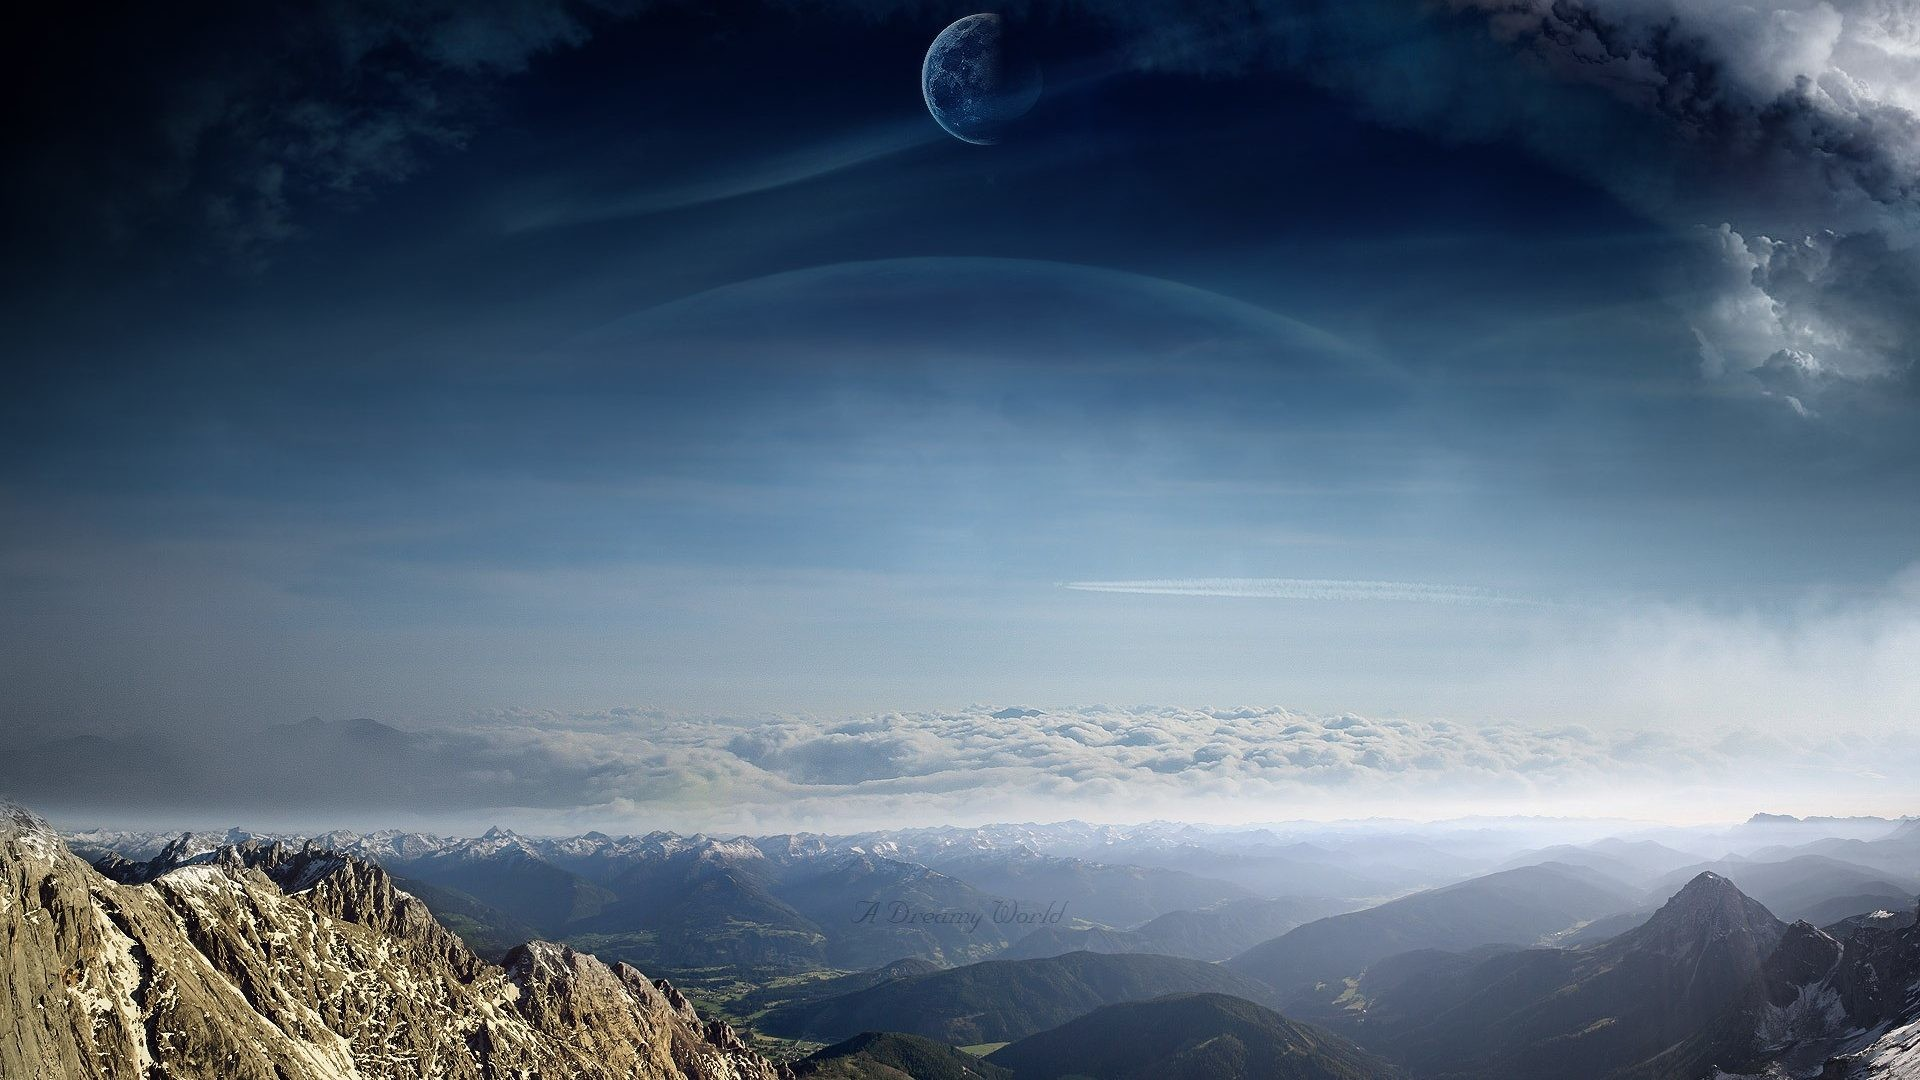 Res: 1920x1080, Dreamy Digital Moons Skies Alien Planets Scenic Art Sci Clouds Mountains  Landscapes Manipulations Hd Nature Portrait Wallpapers Detail